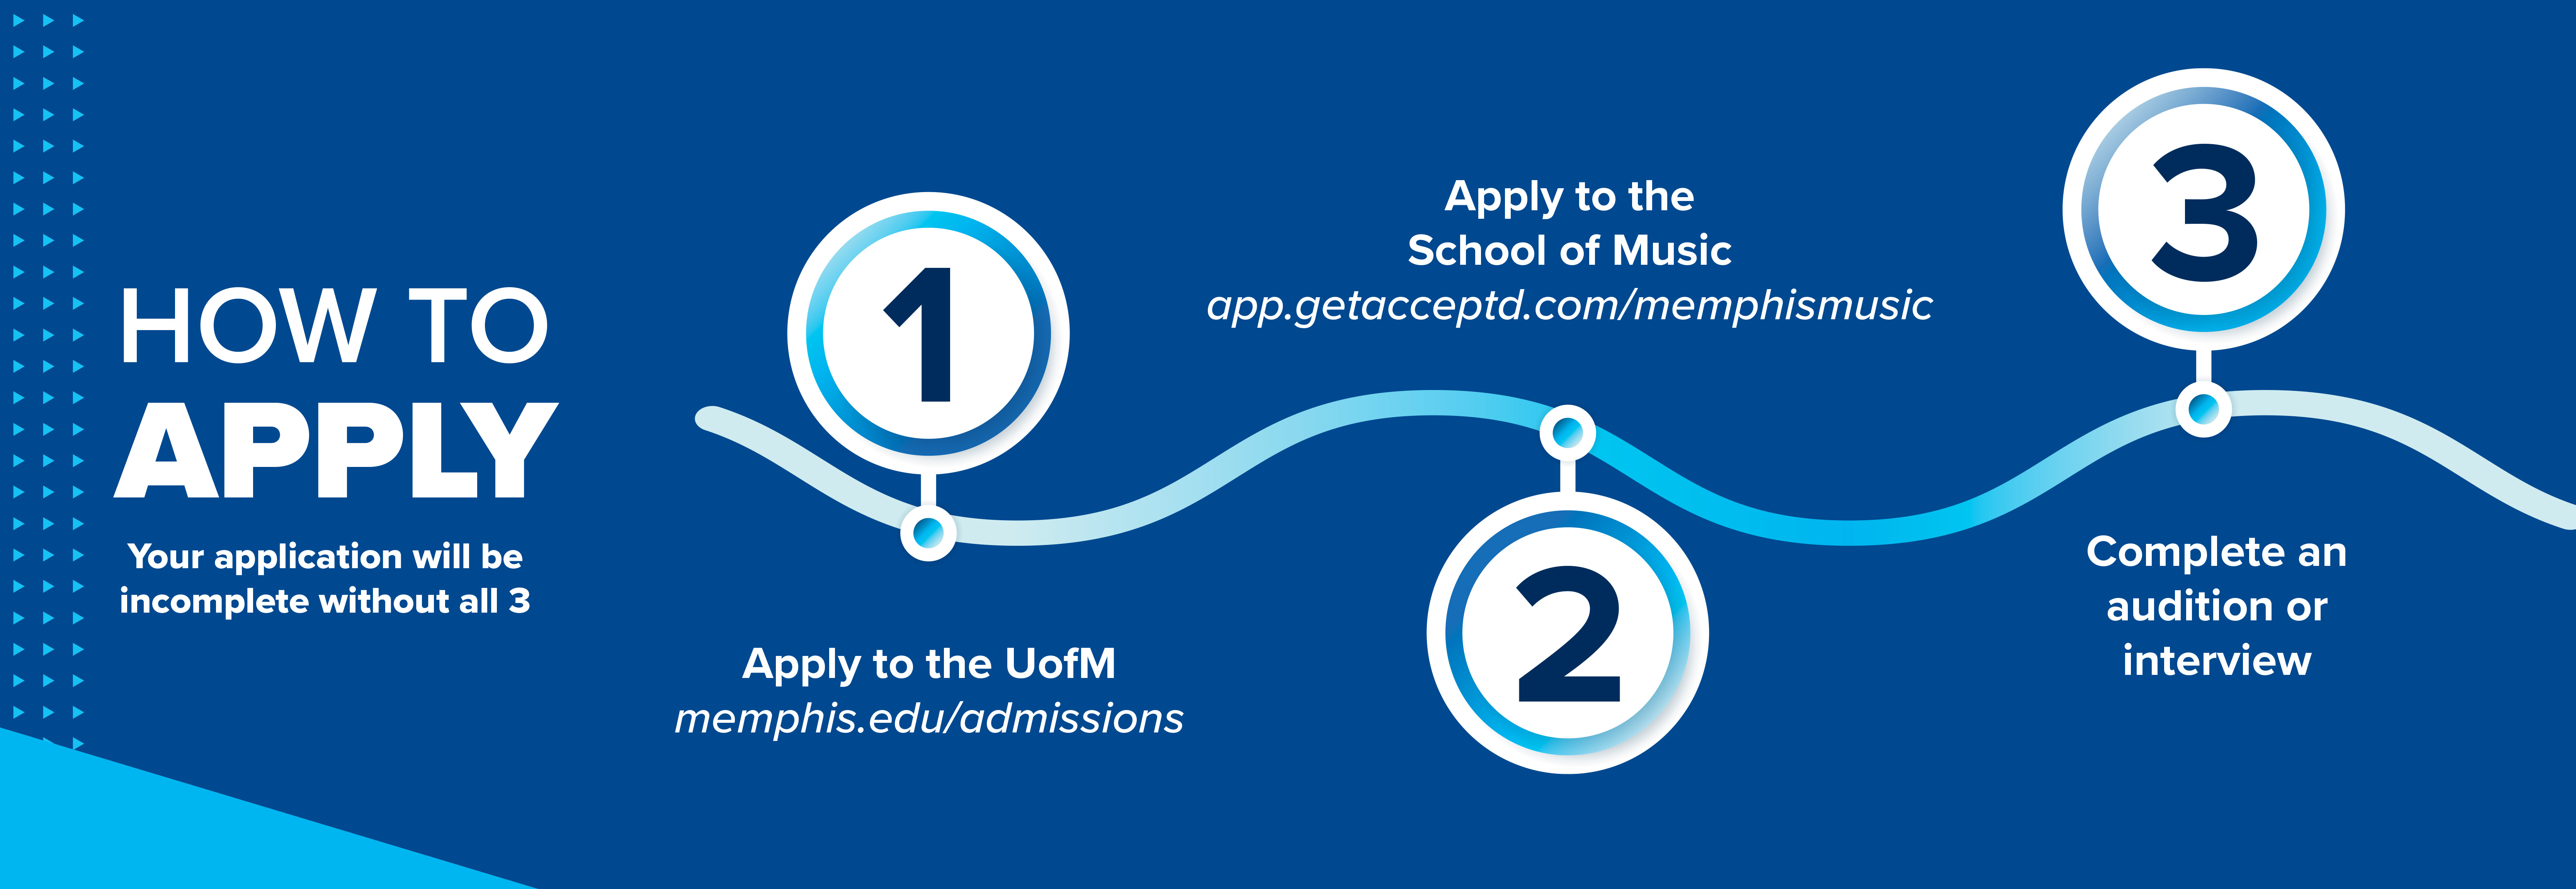 Infographic on how to apply: first, apply to the University of Memphis at large. Then, apply to the School of Music via Acceptd. Finally, complete an audition or interview.